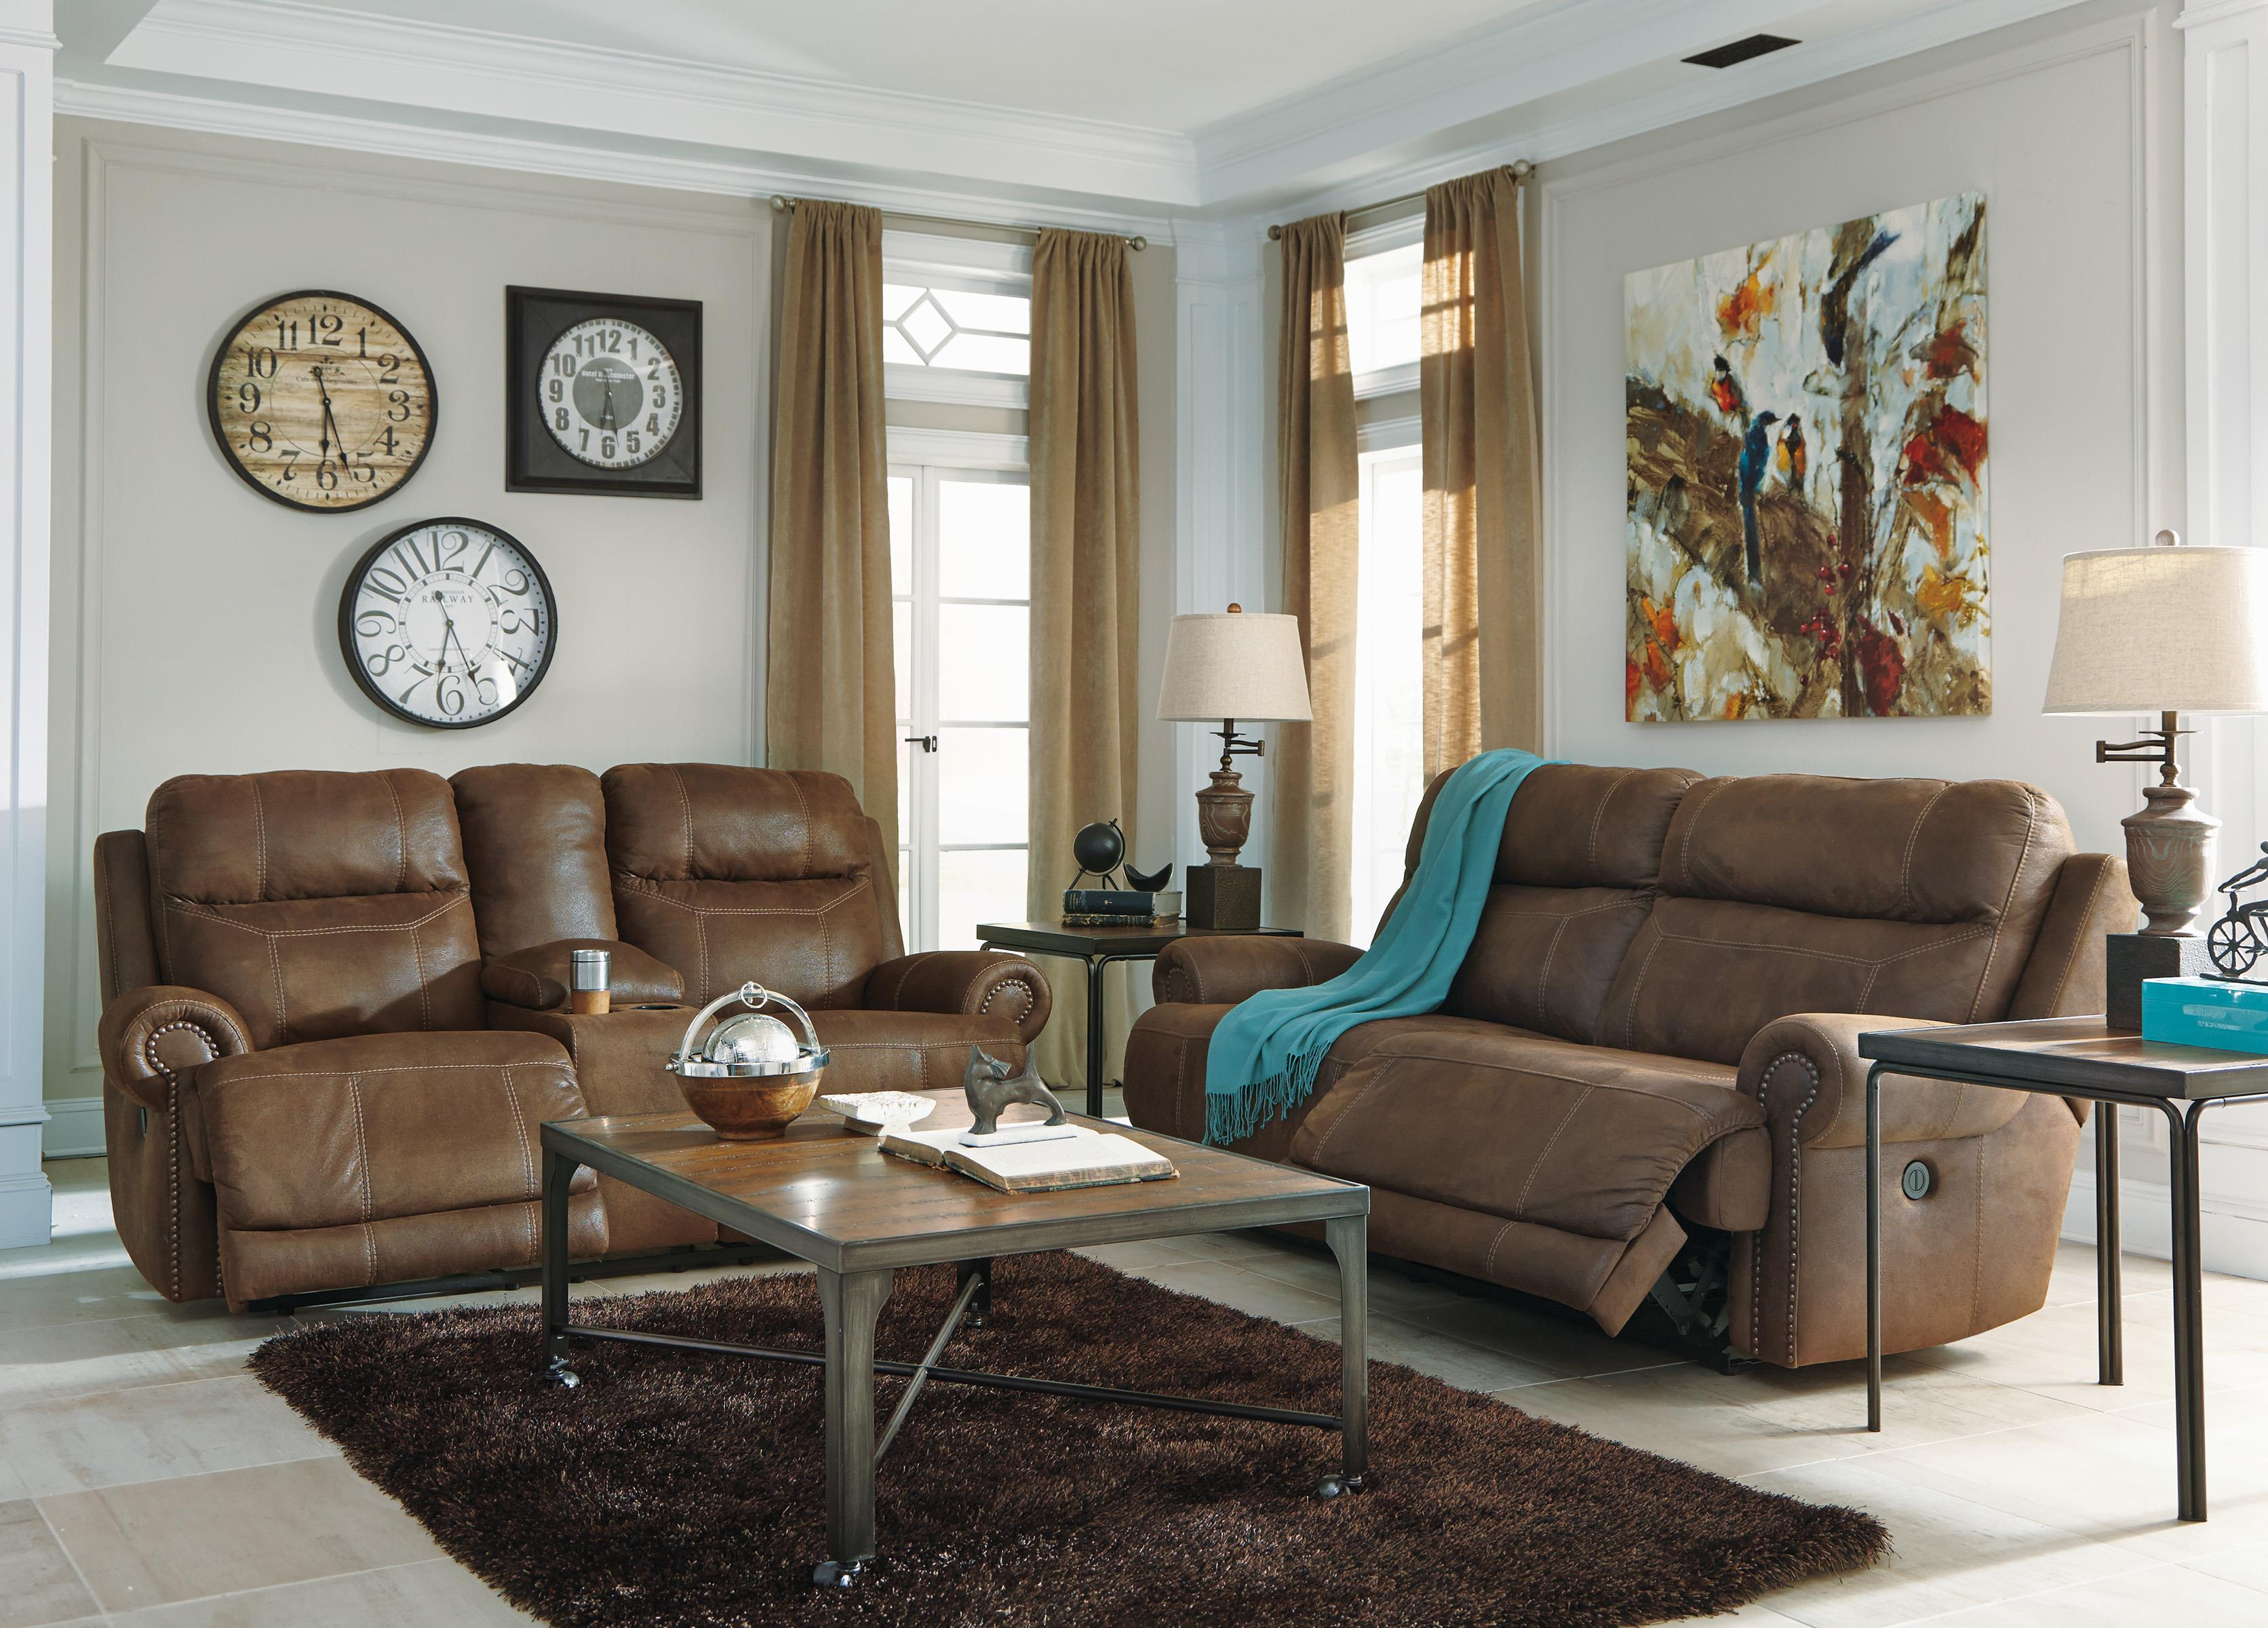 Signature Design by Ashley Austere Brown 2 Seat Reclining Sofa